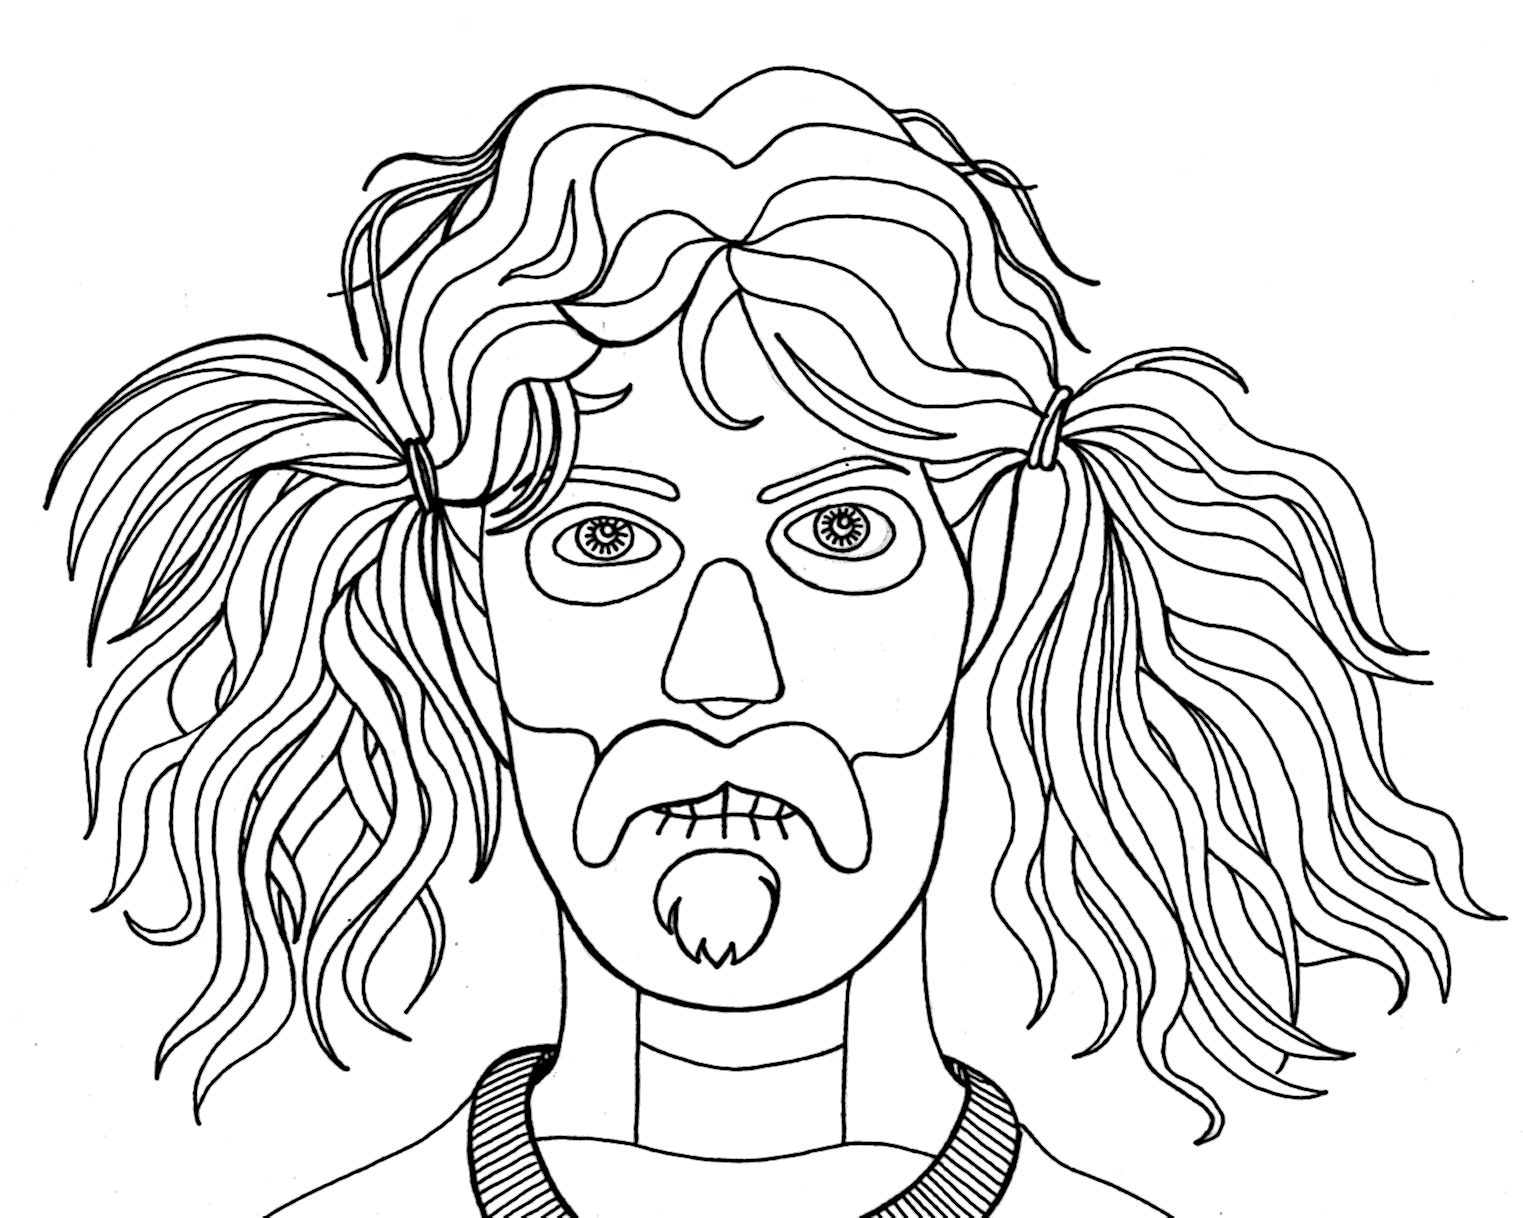 weird coloring pages - photo#16